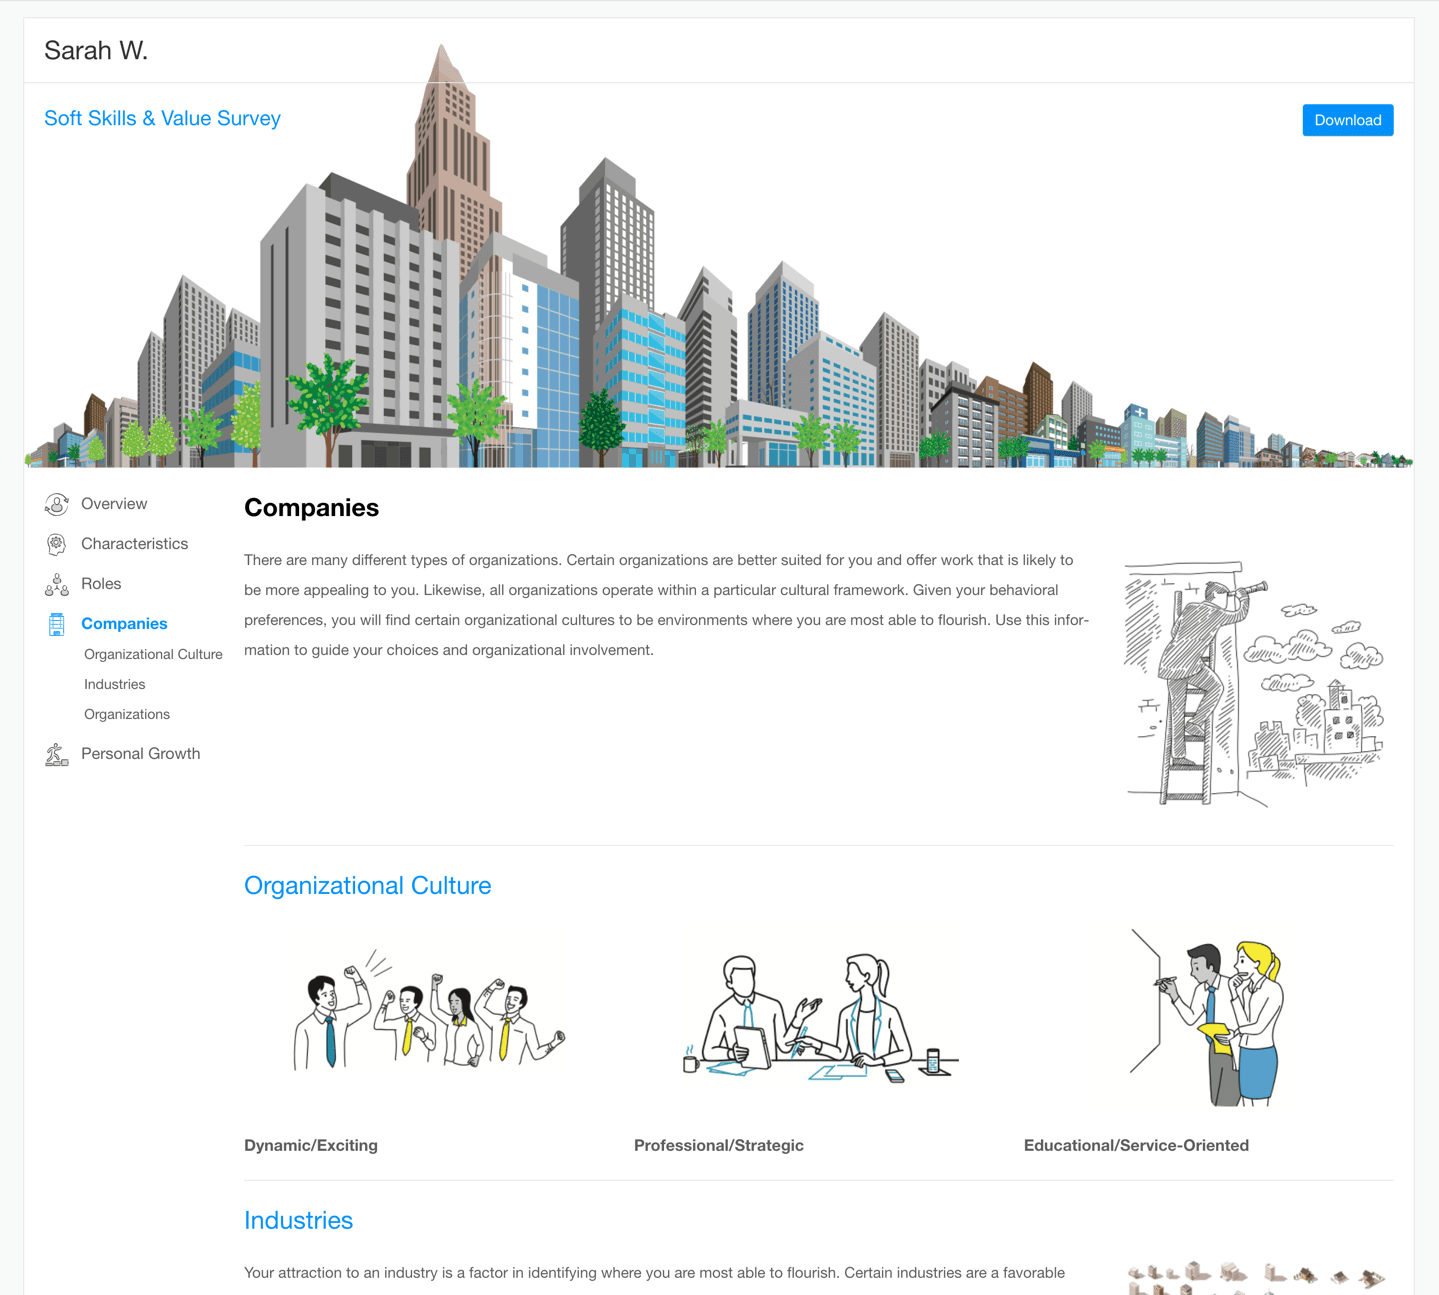 preview of Companies section